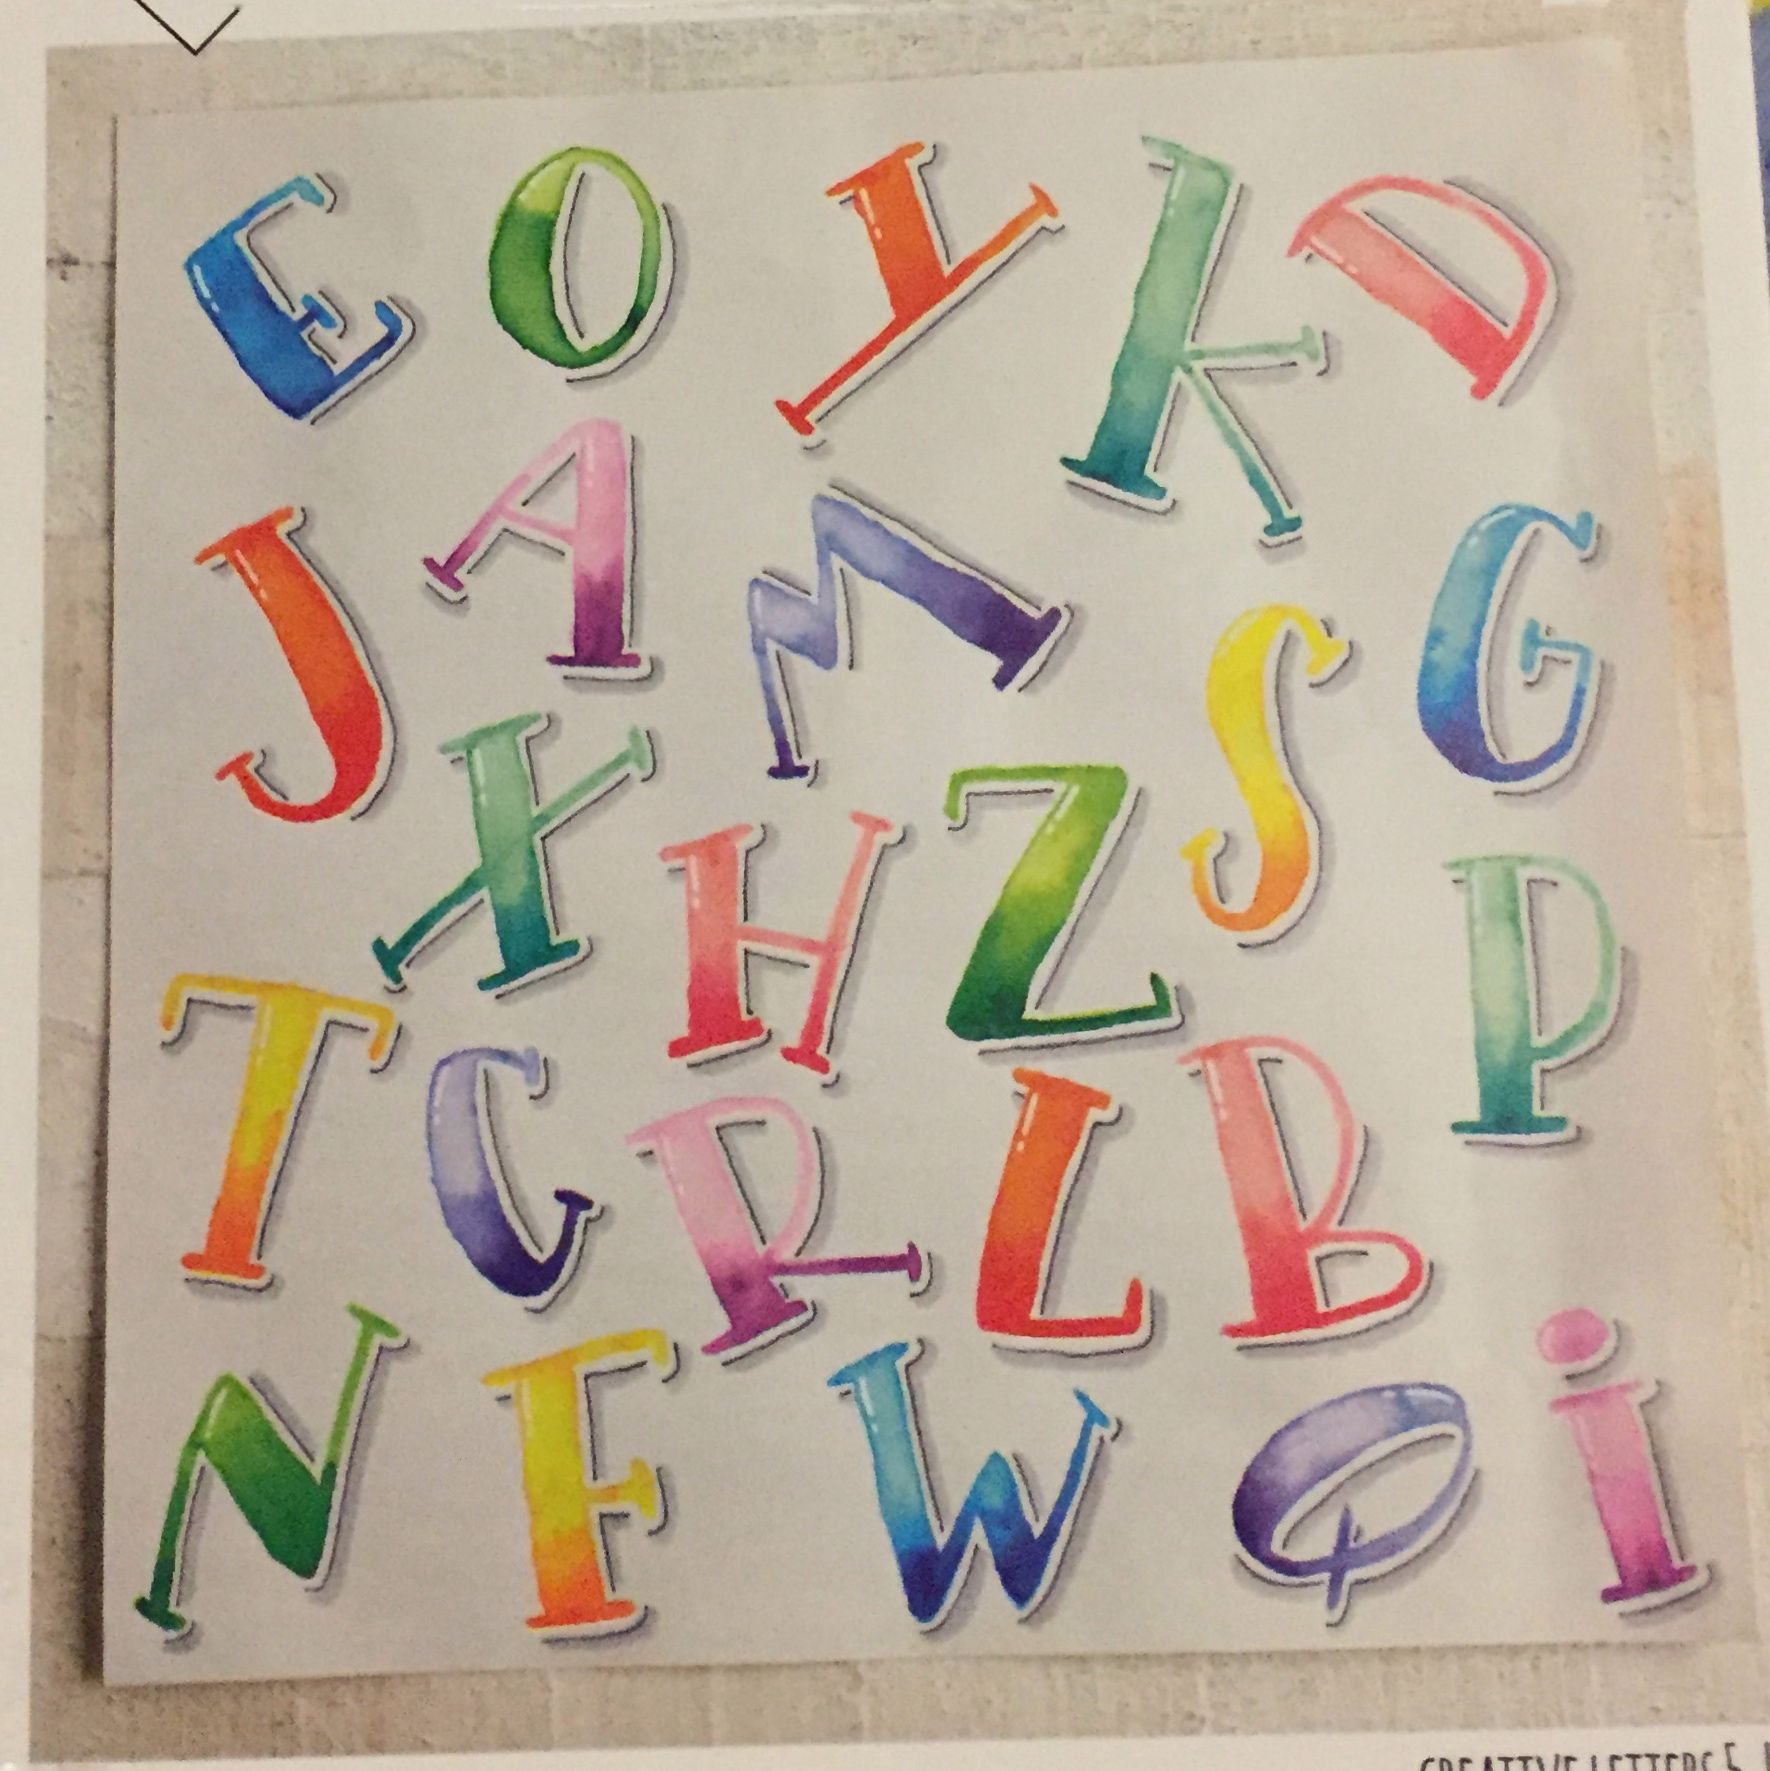 Pin by Gee Amaya on Letter | Creative lettering, Lettering ...  Creative Lettering Styles